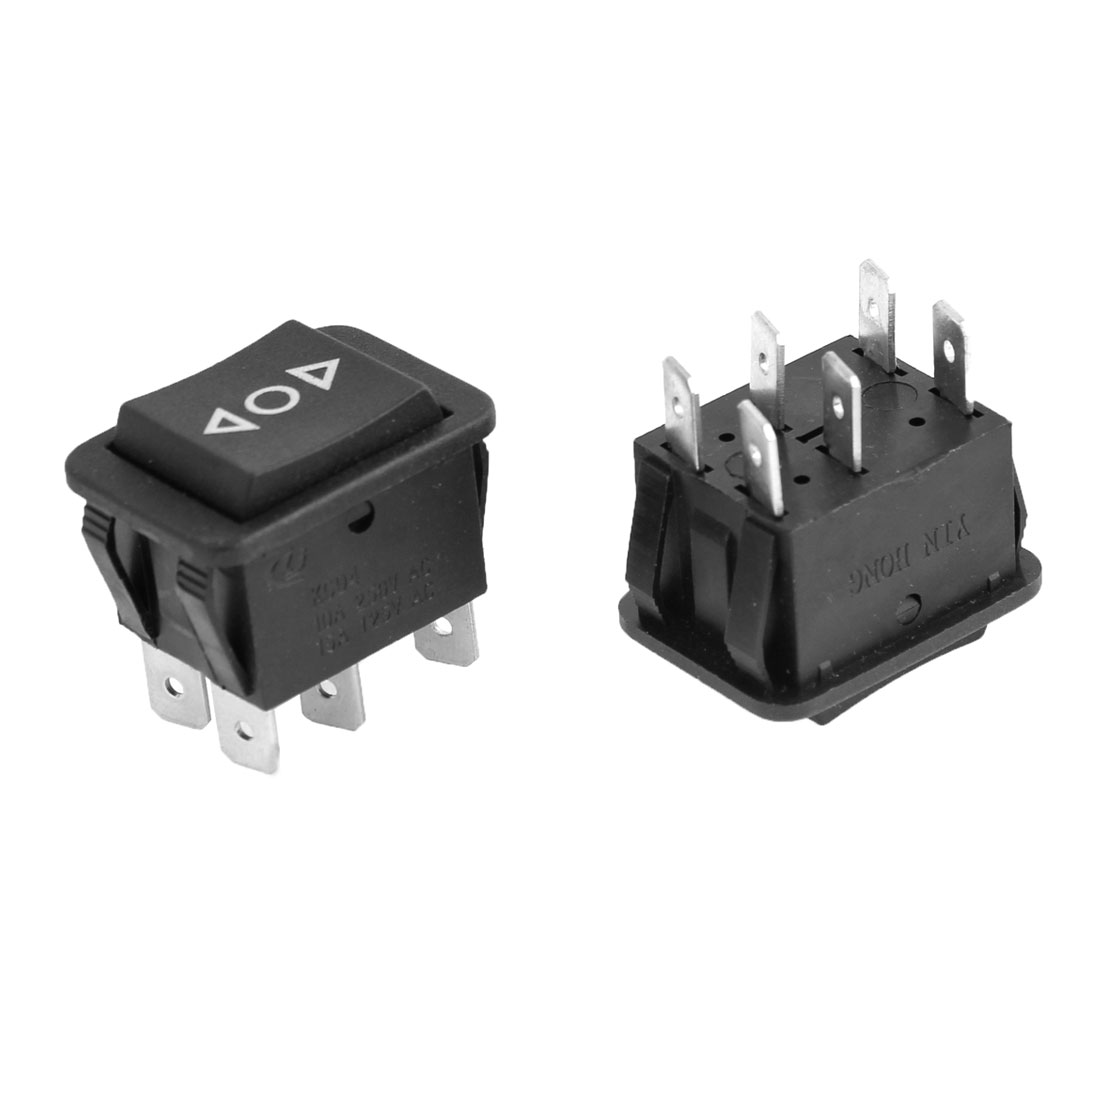 2 Pcs Black Plastic AC 250V/10A 125V/15A DPDT Momentary Rocker Switch for Car